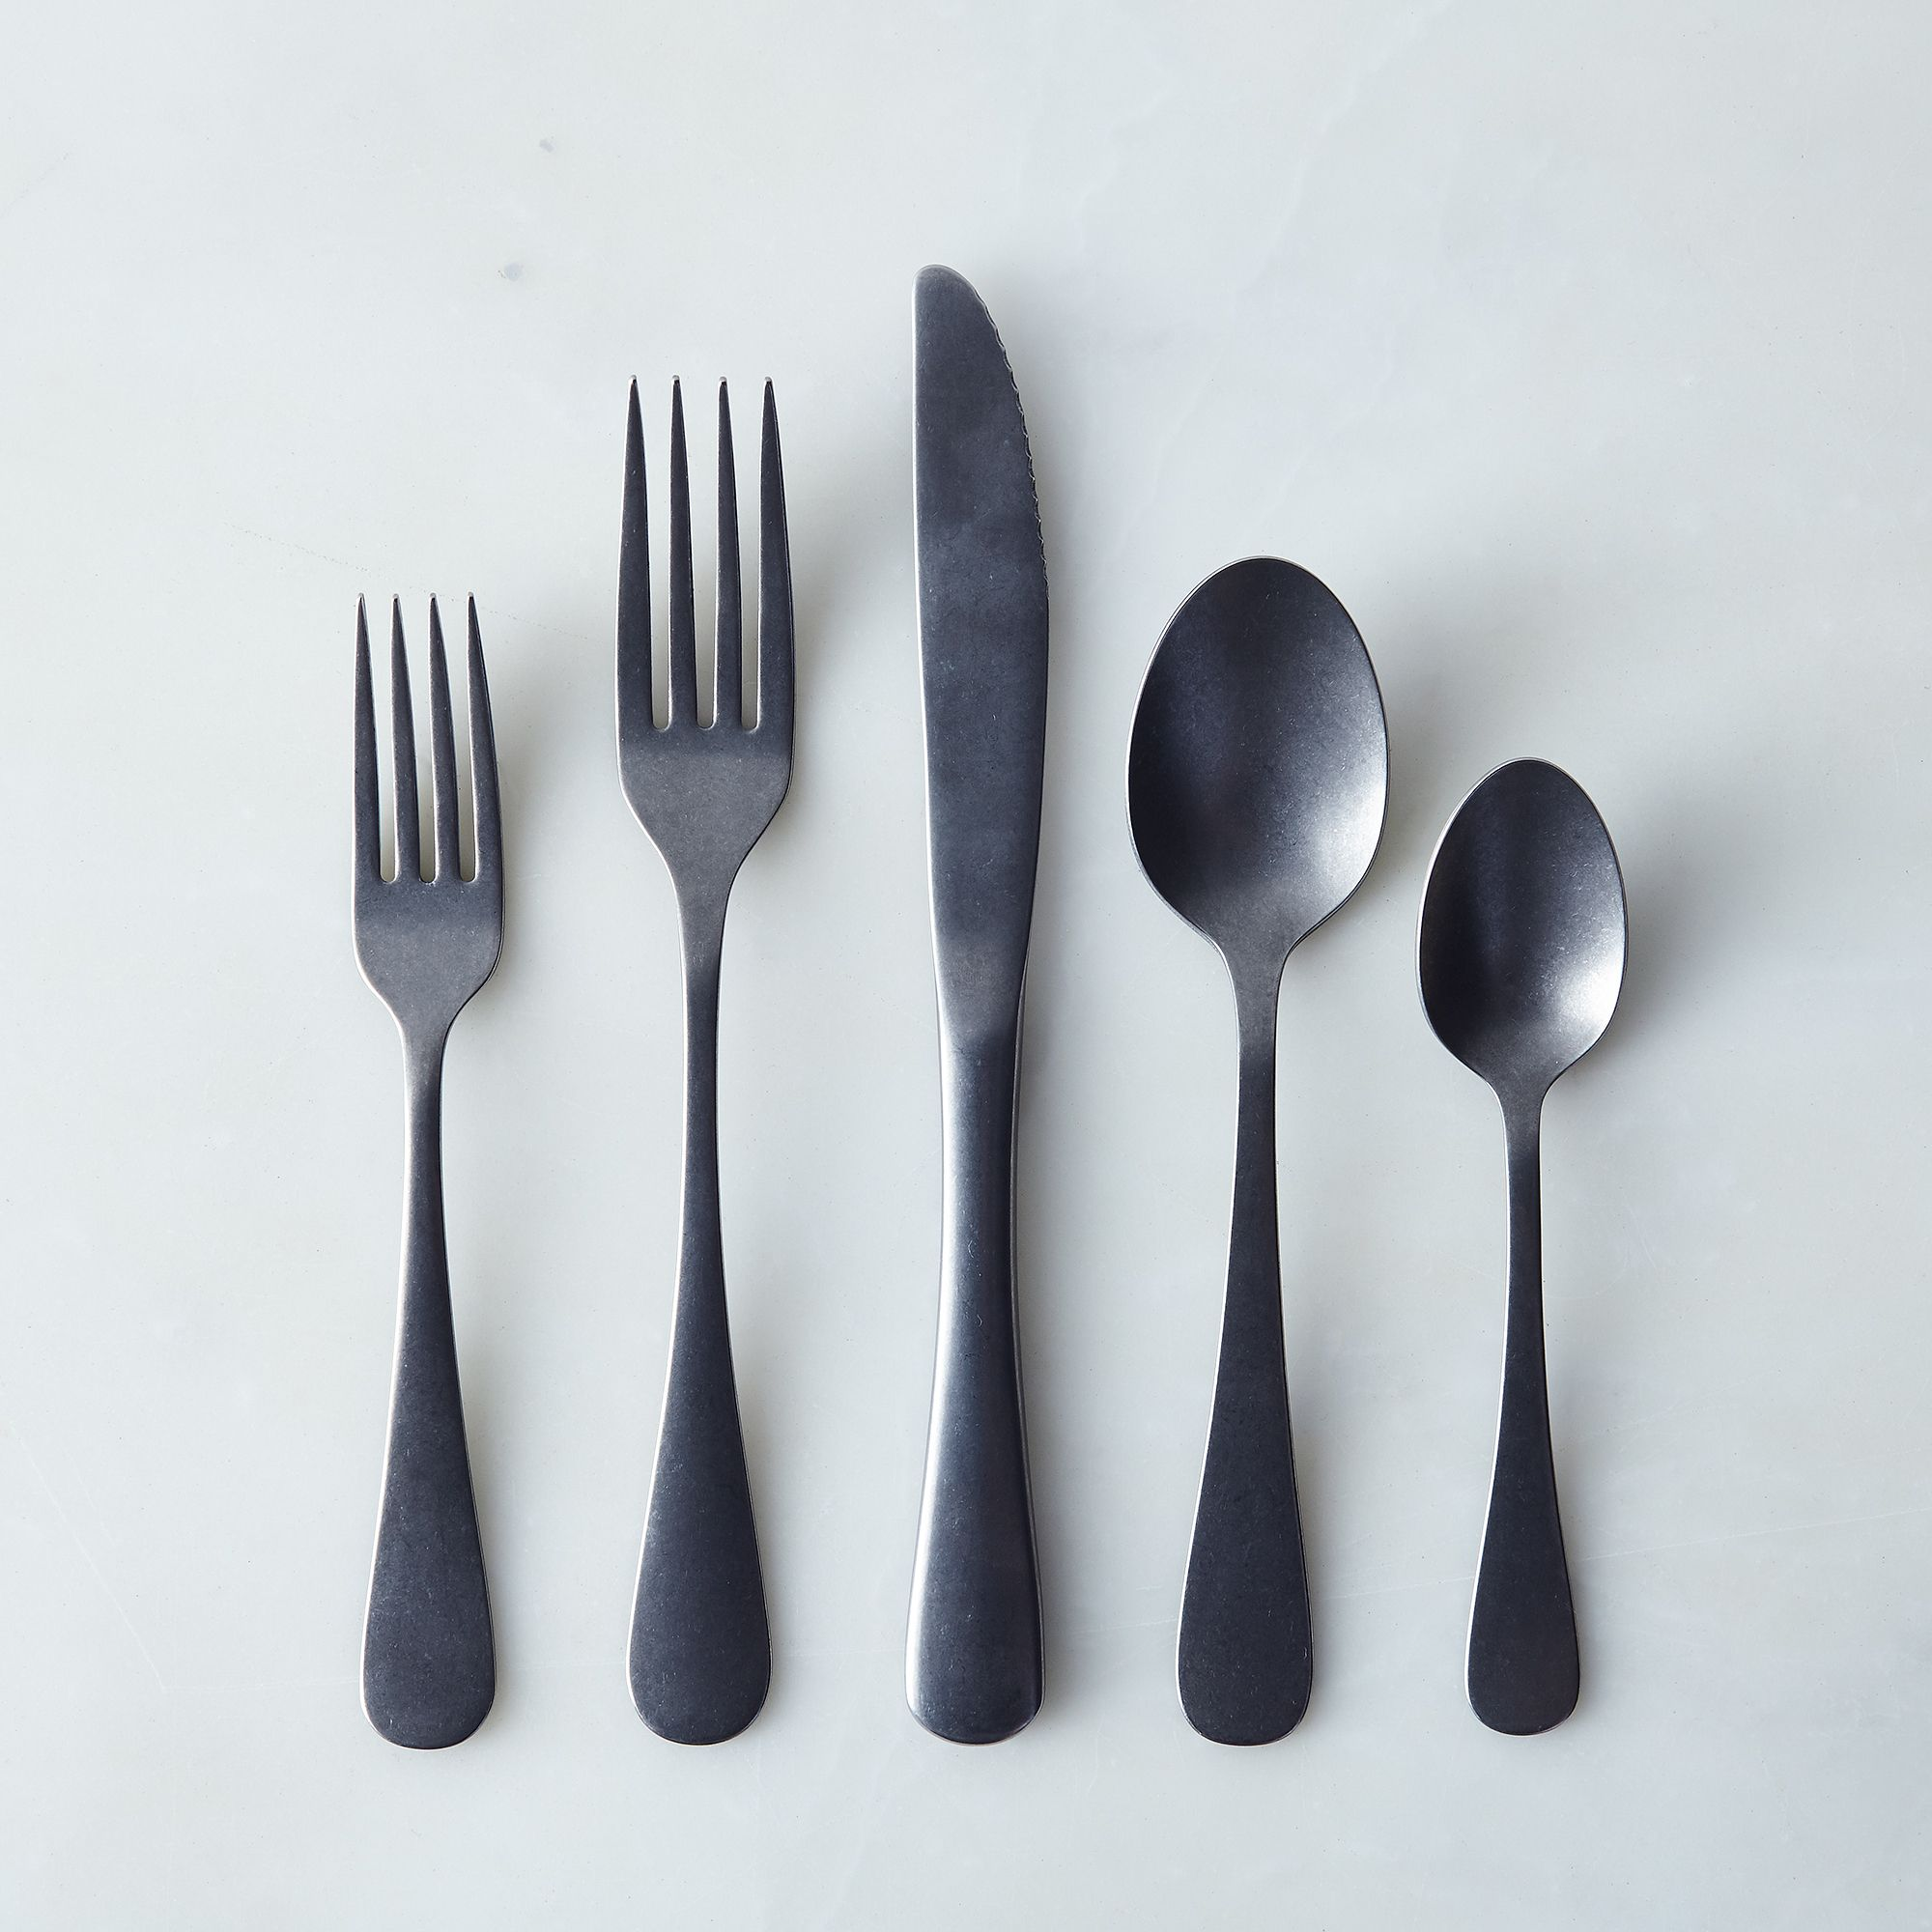 American-made Woodstock Flatware 5-piece Place Setting